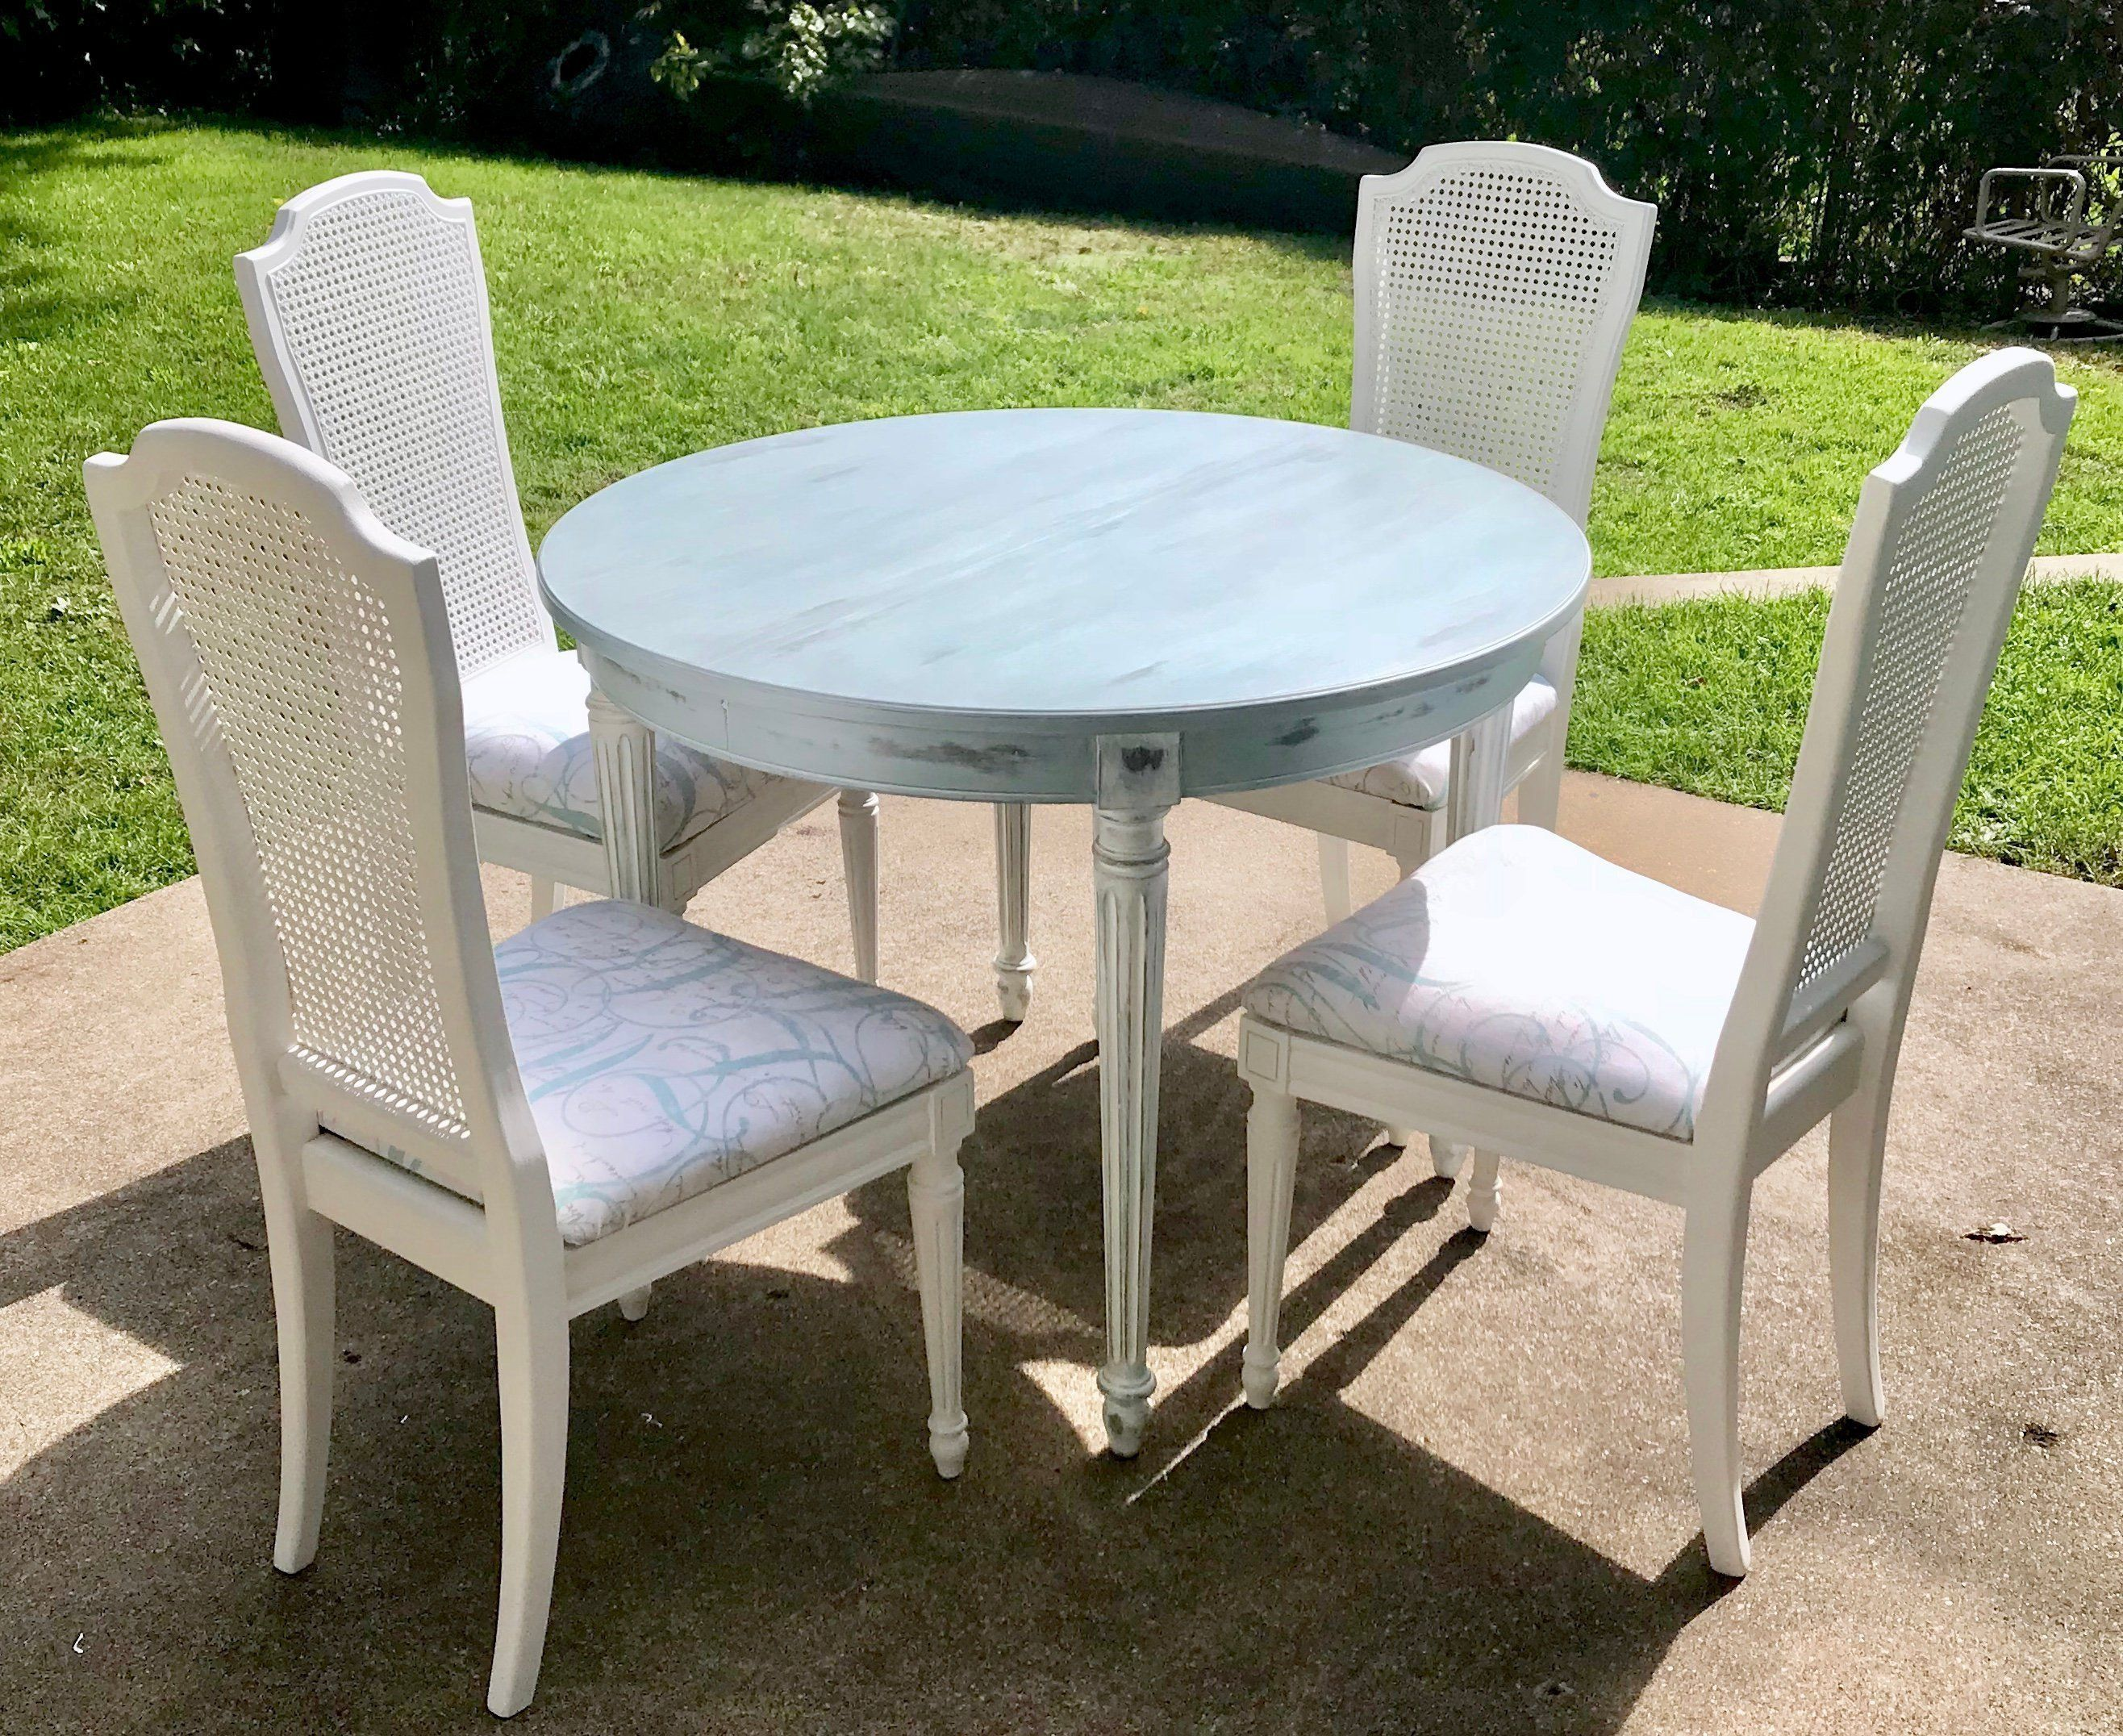 Sold Thomasville Dining Set Dining Table And Chairs French Farmhouse Table Round Dining Table Table And Chairs Refurbished Farmhouse Dining Chairs Outdoor Furniture Chairs Leather Dining Chairs